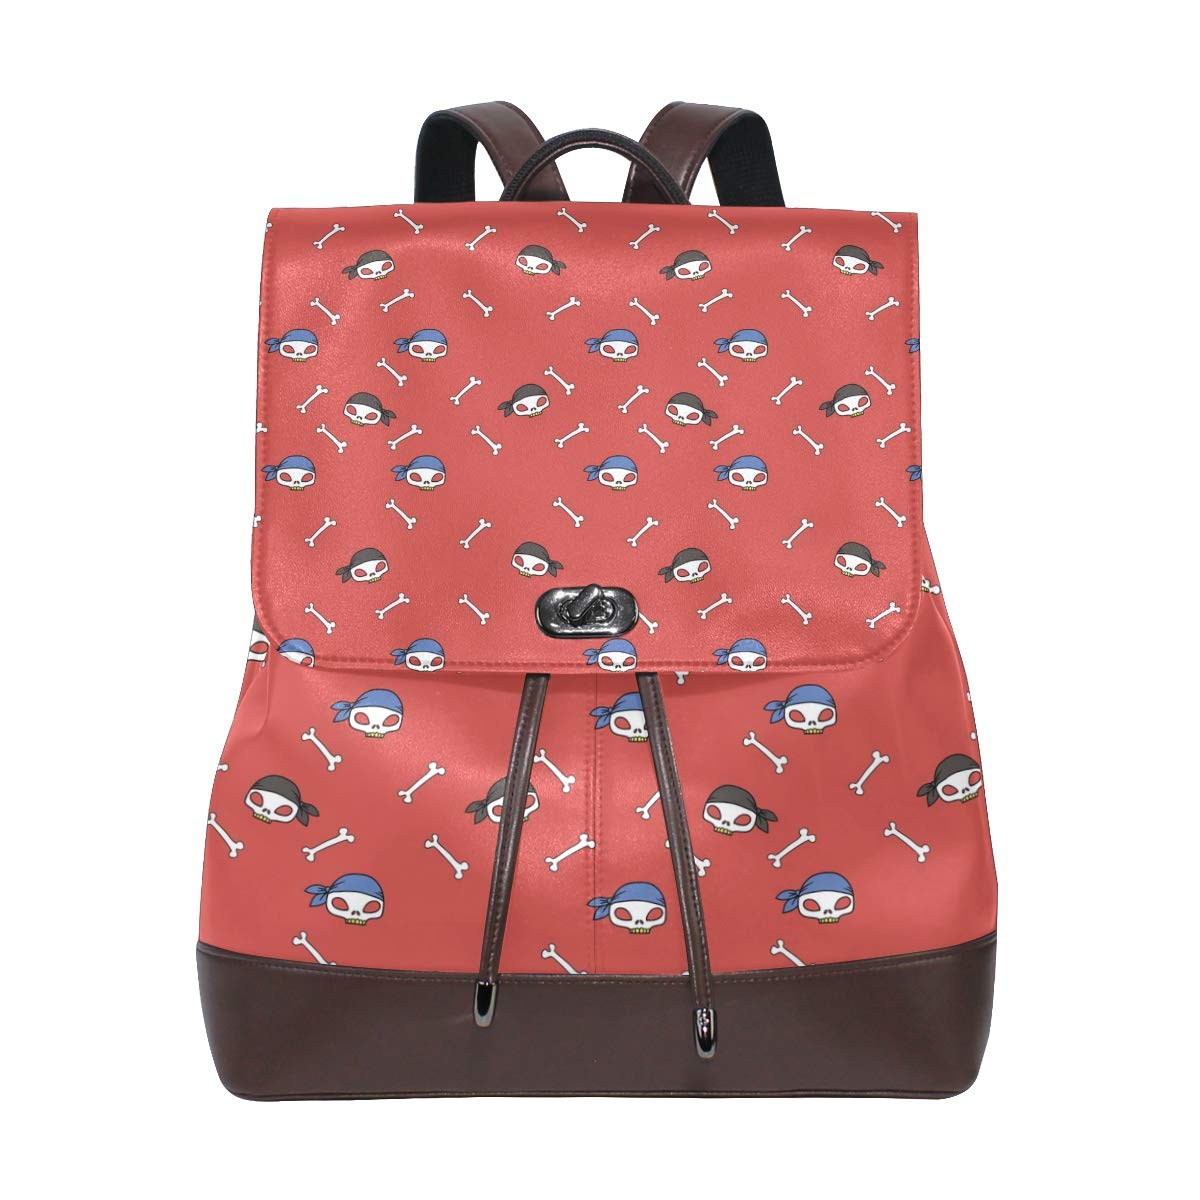 Leather Pattern With Skull Backpack Daypack Bag Women